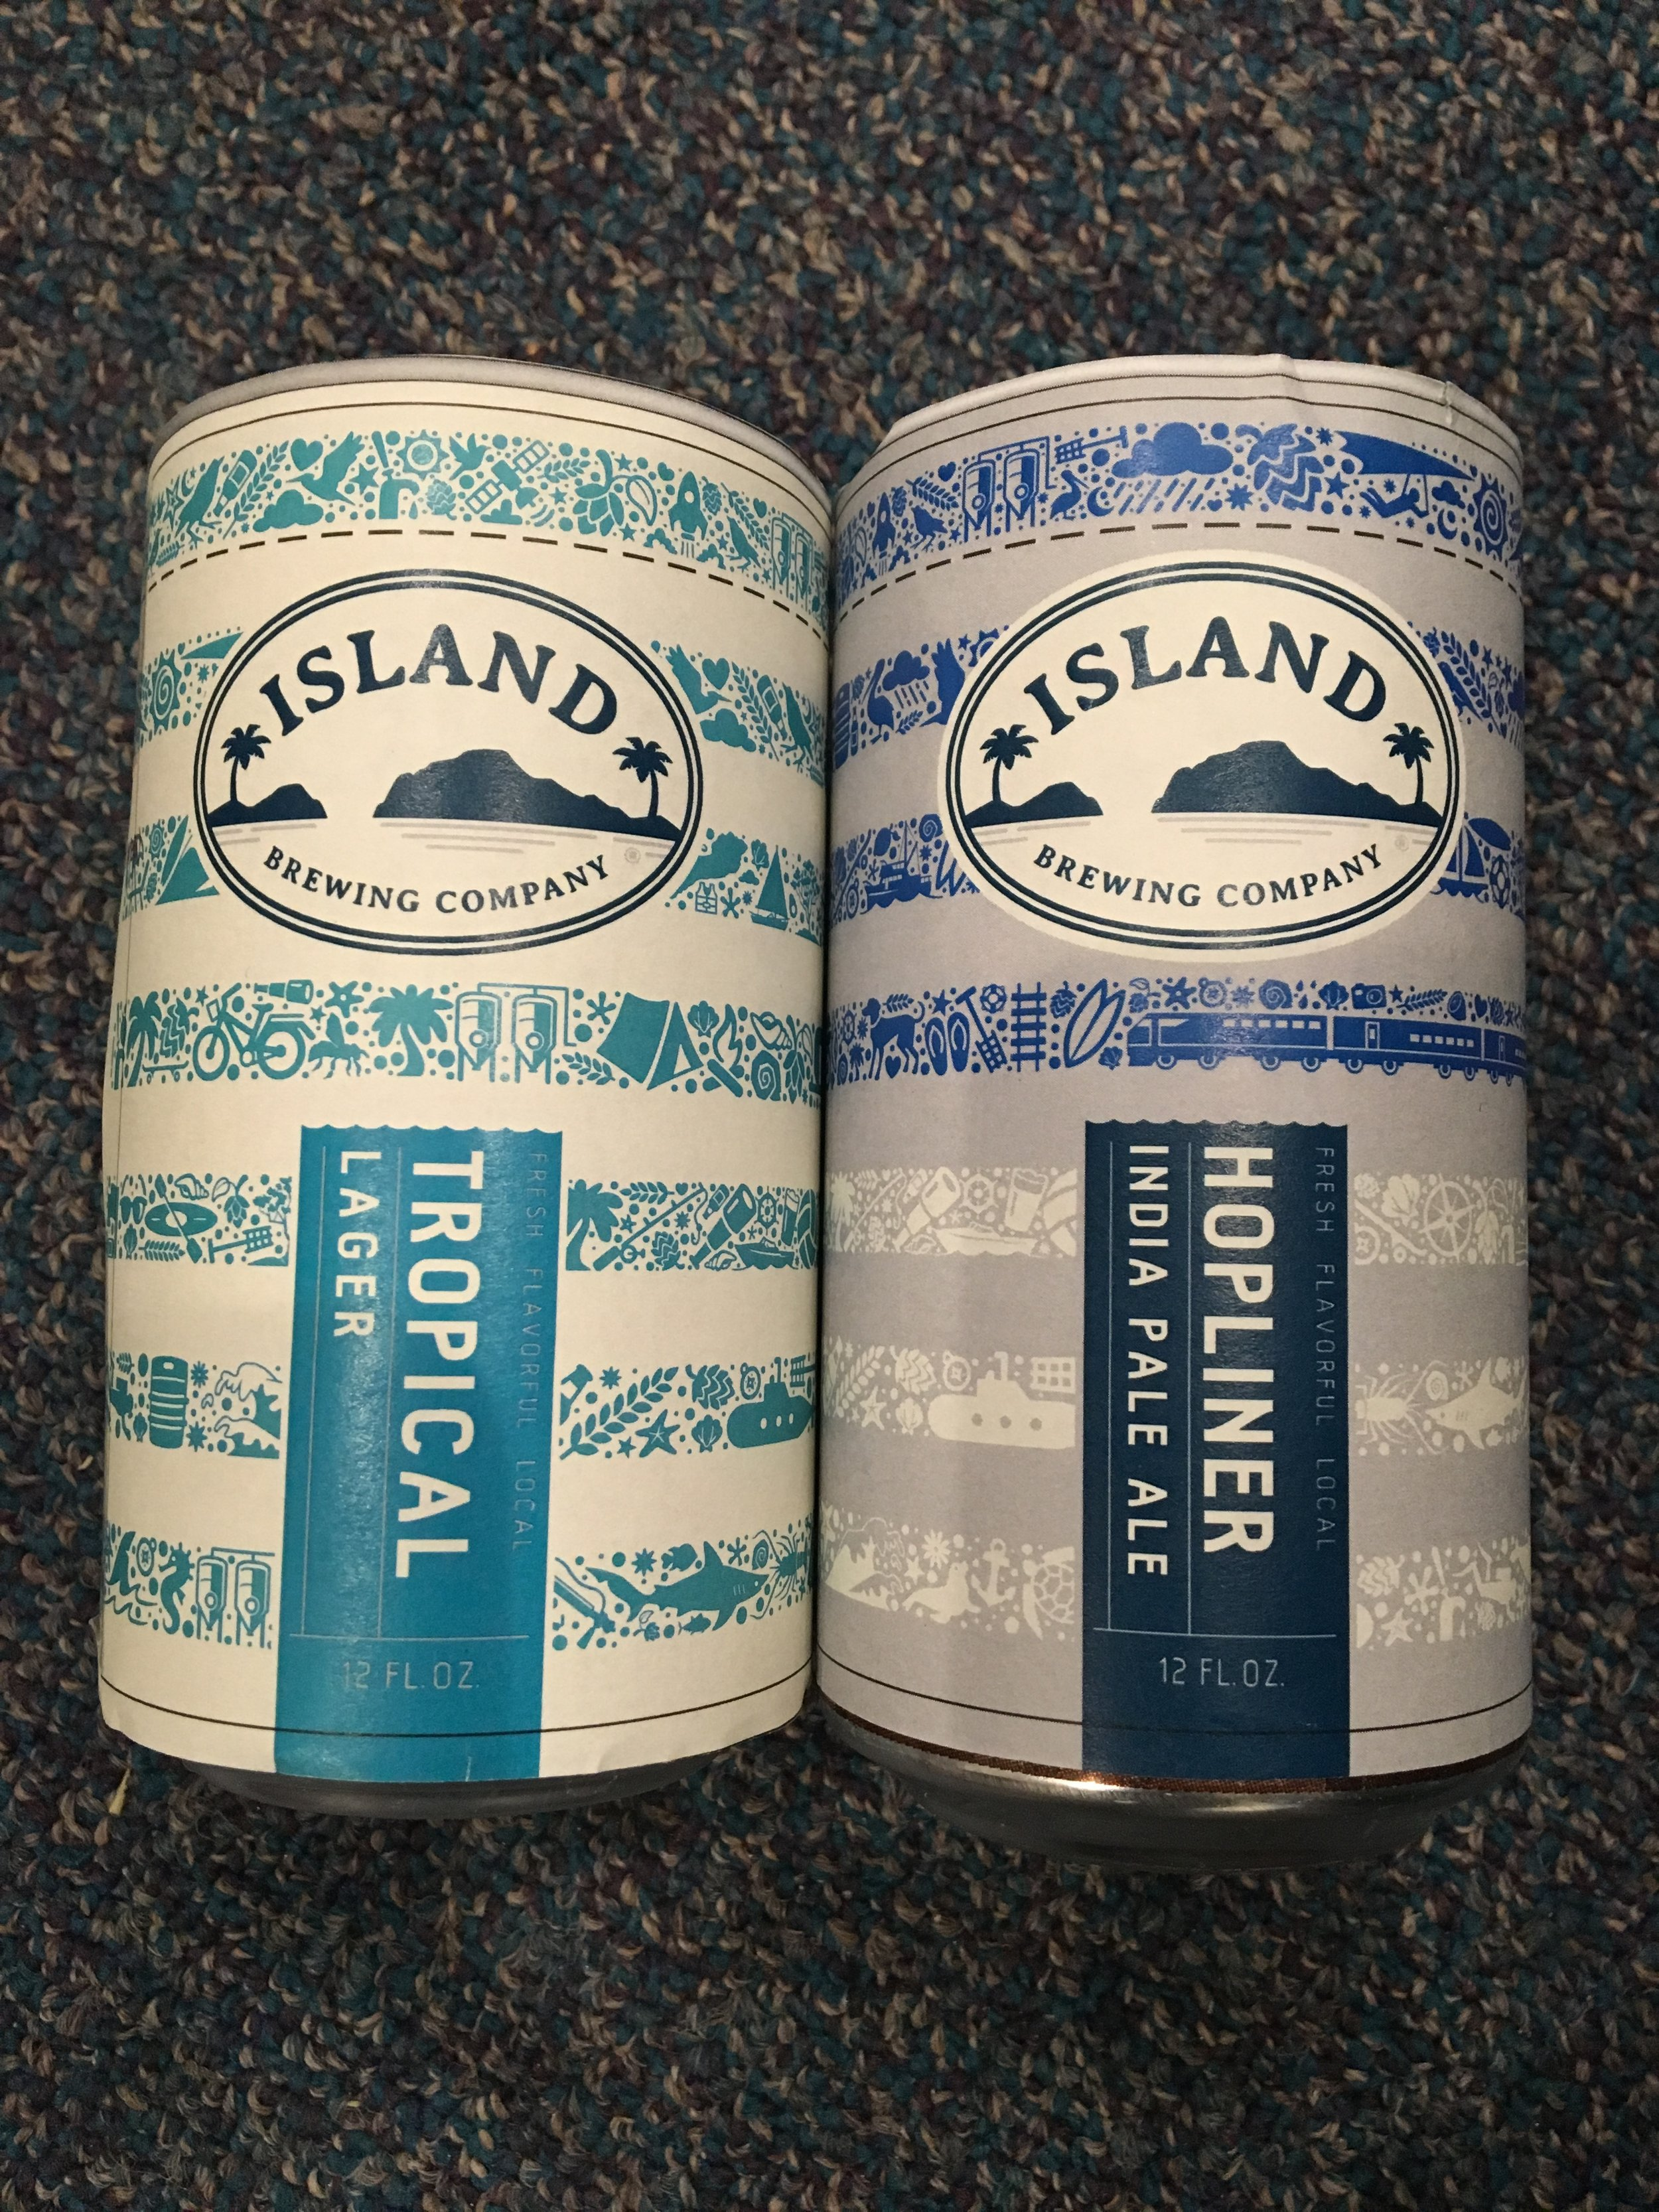 tropical lager and hopliner cans.JPG